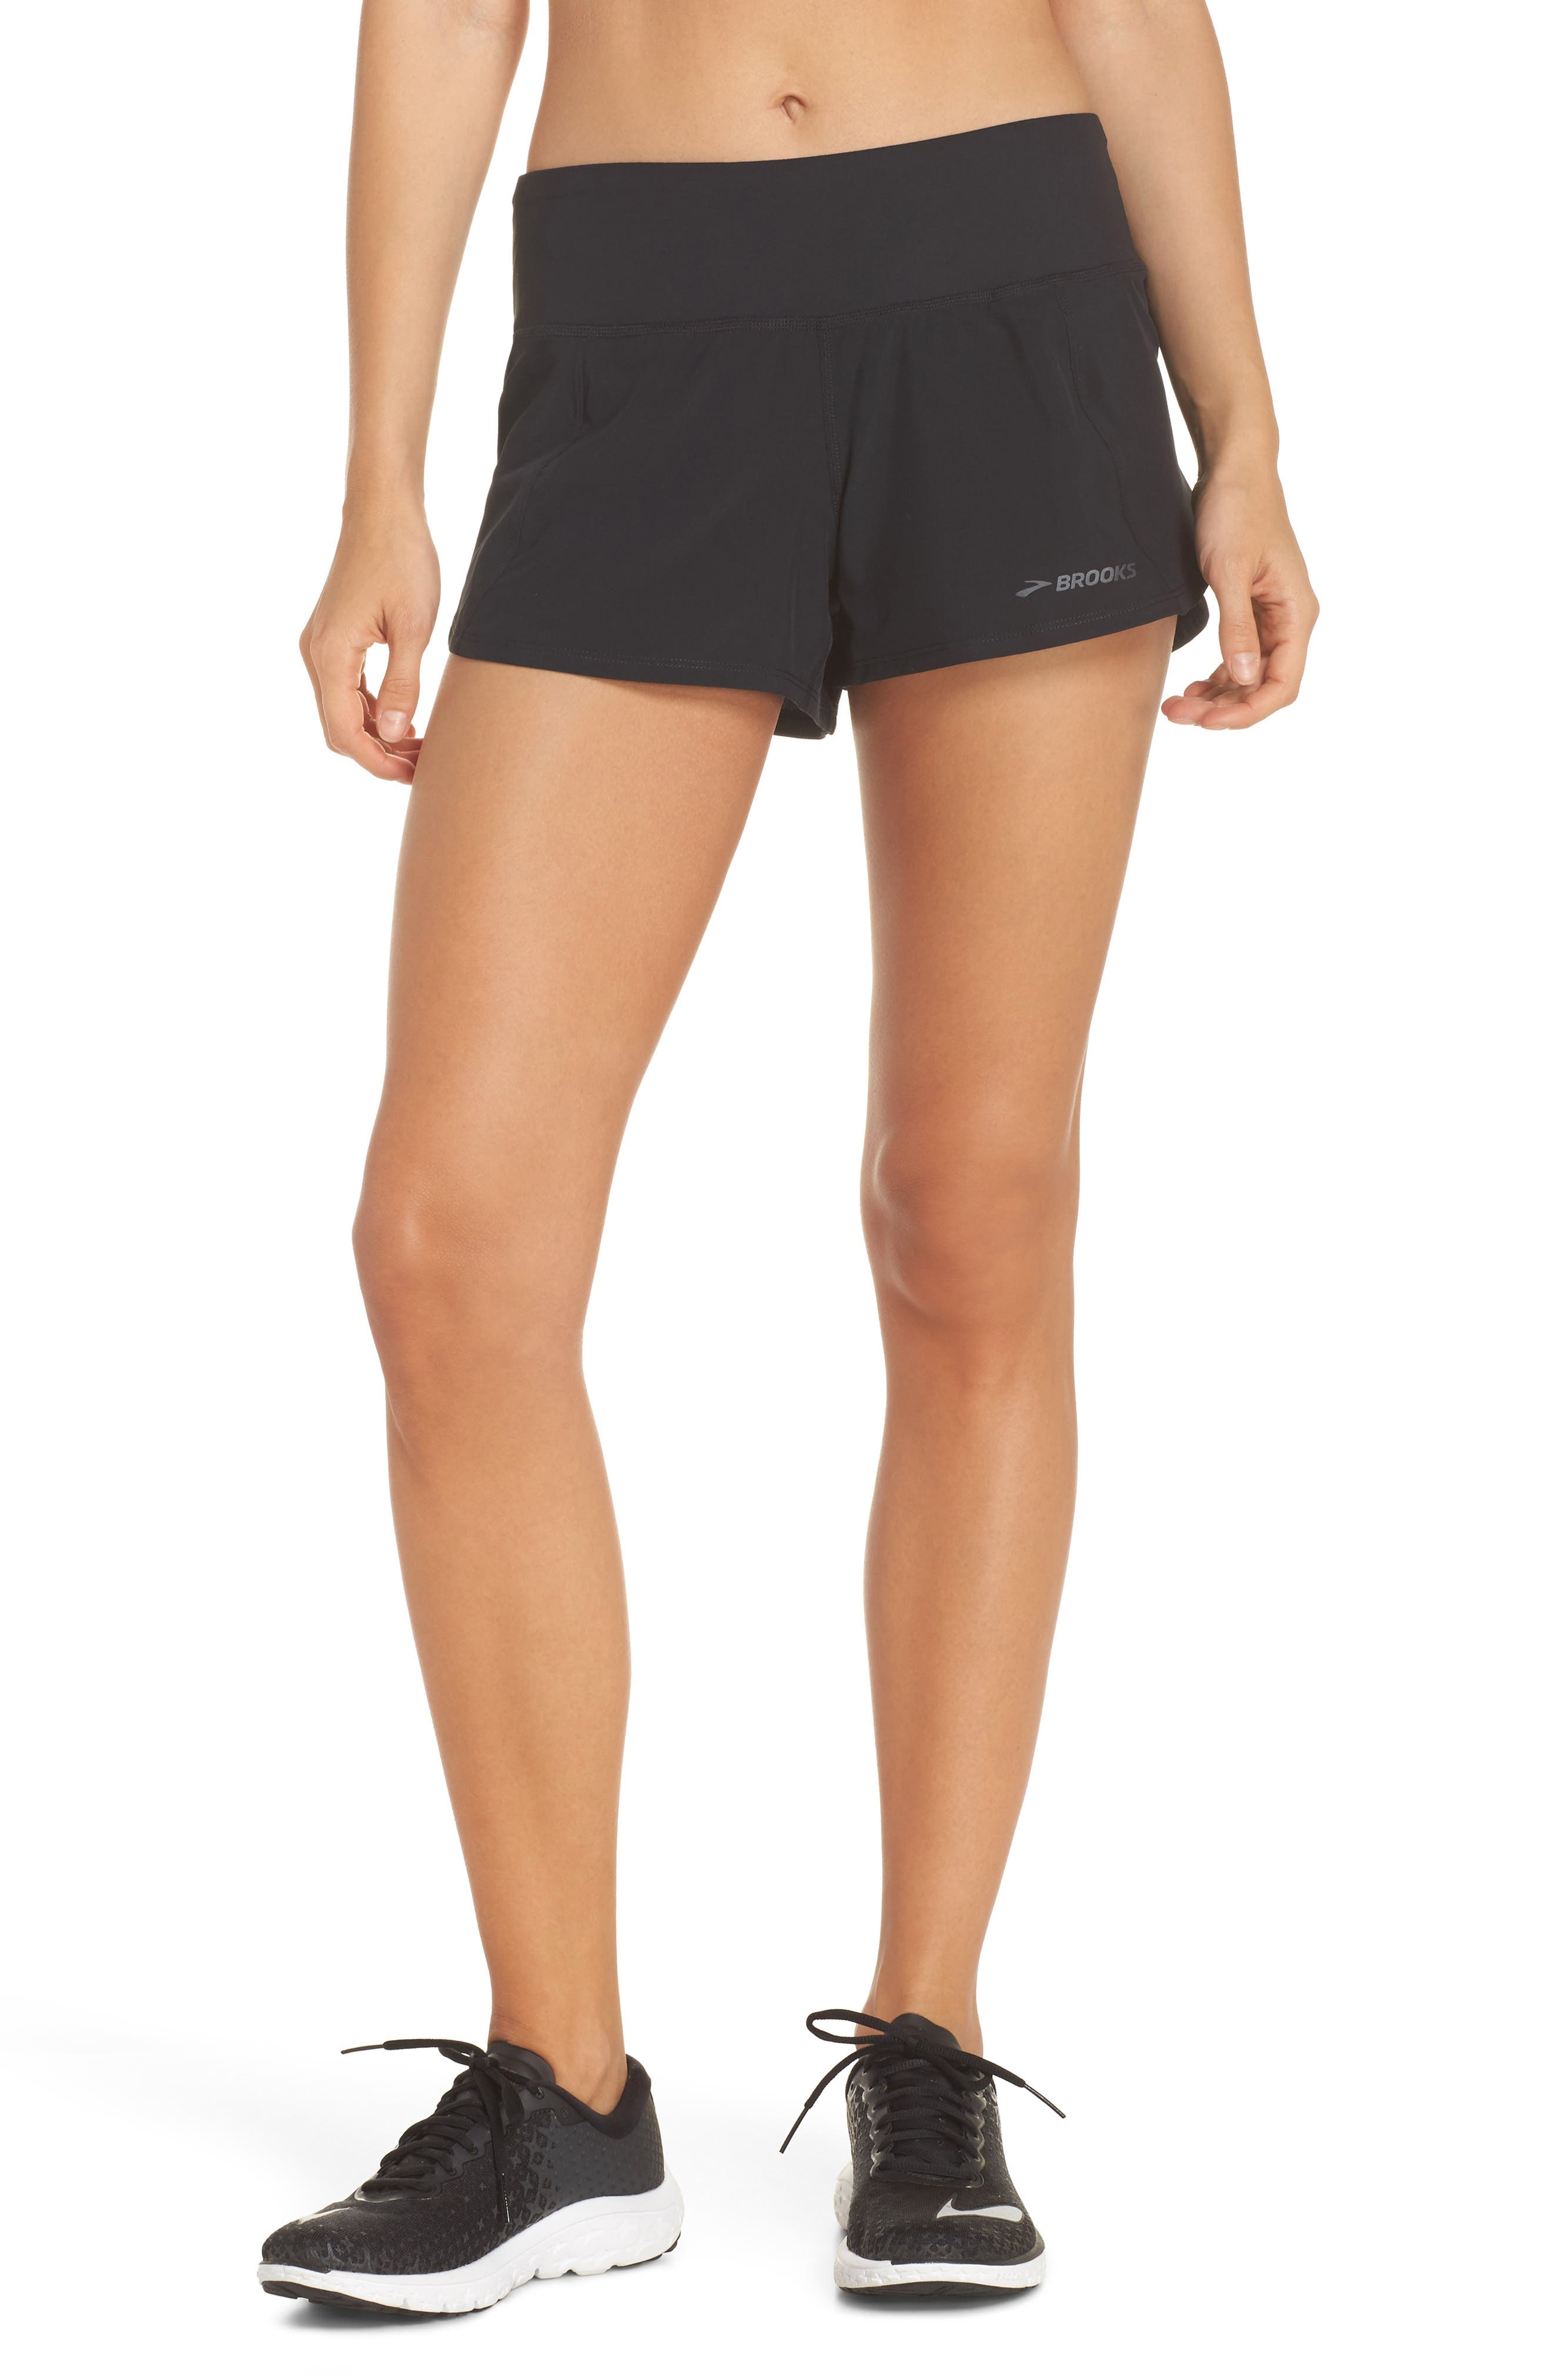 Chaser 3 Shorts,                         Main,                         color, 001